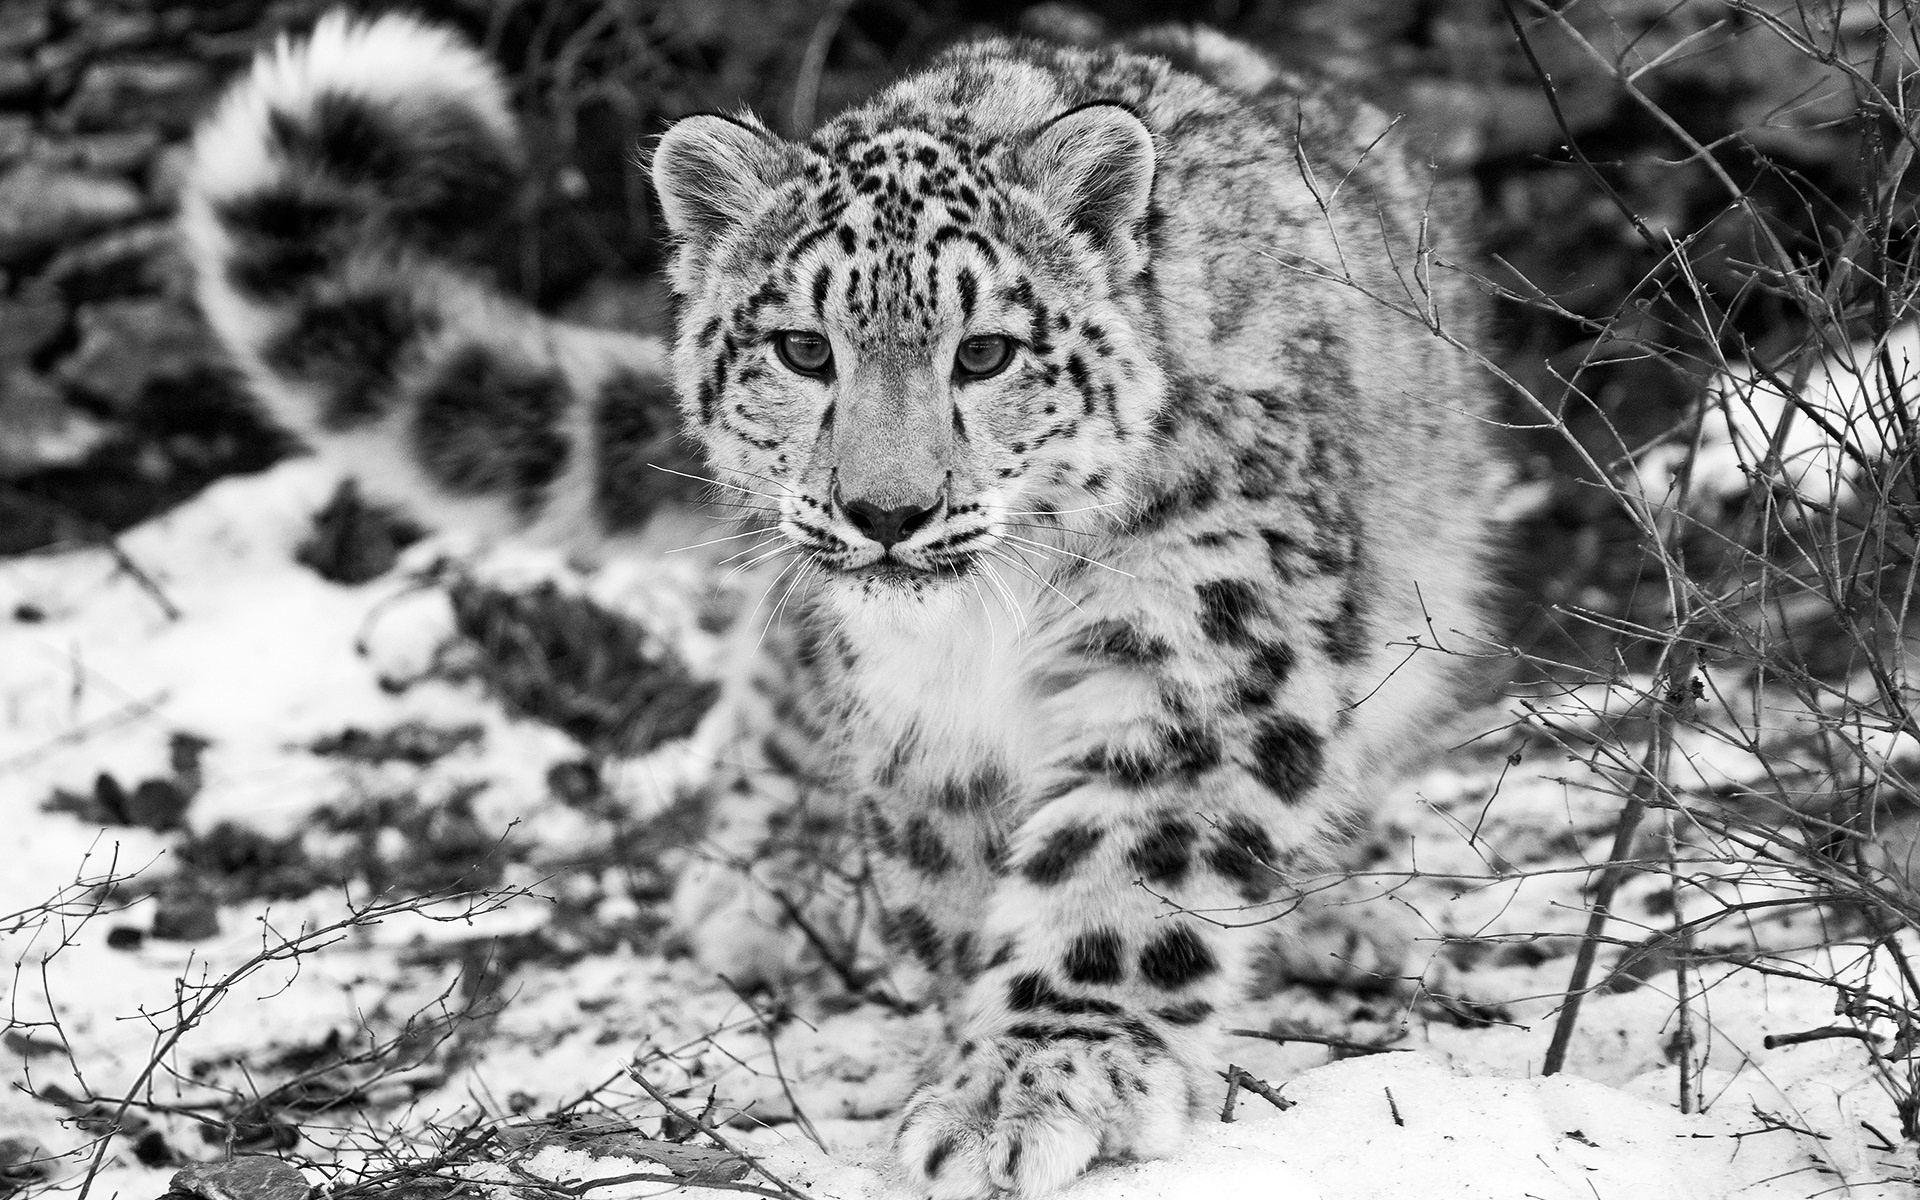 snow leopard snow hunting attention black and white